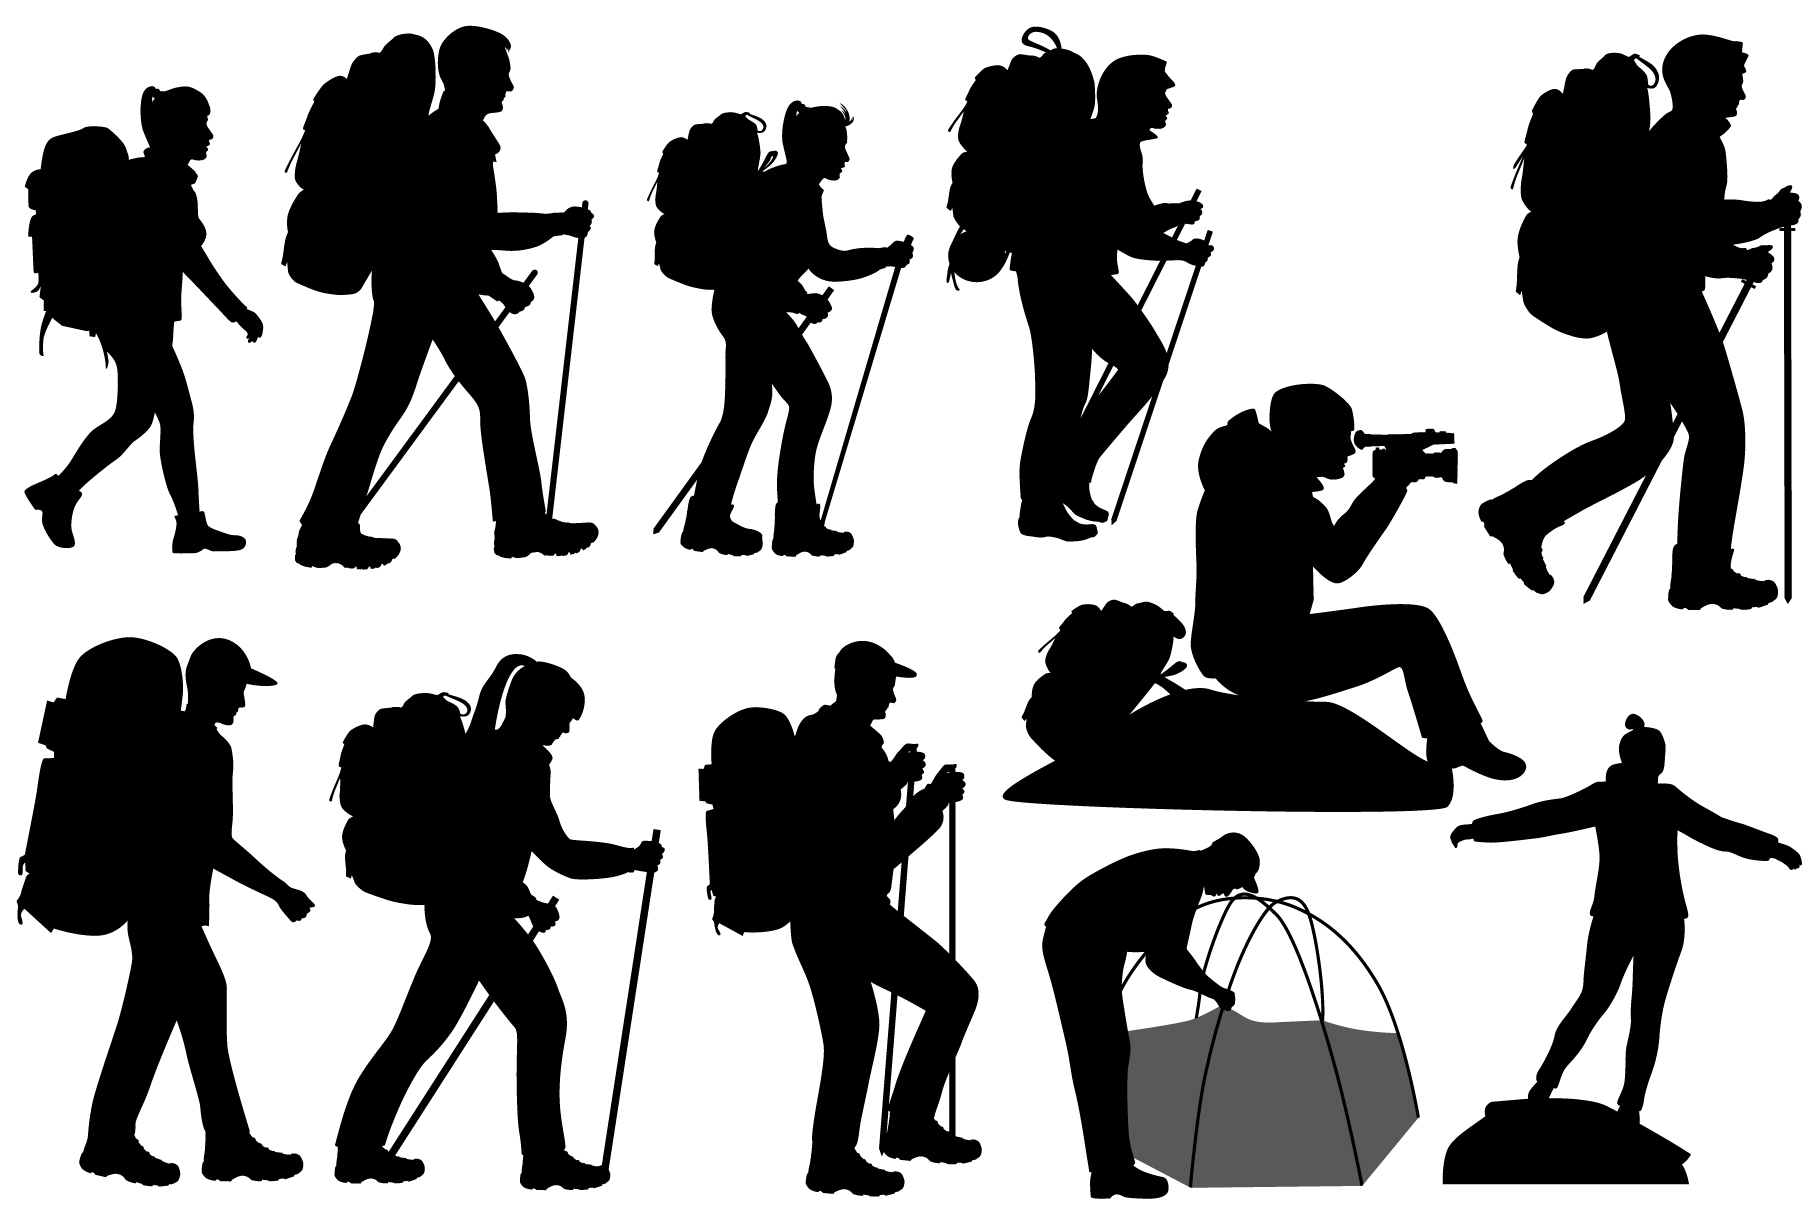 hiking silhouette 10 hiker silhouette png transparent onlygfxcom hiking silhouette